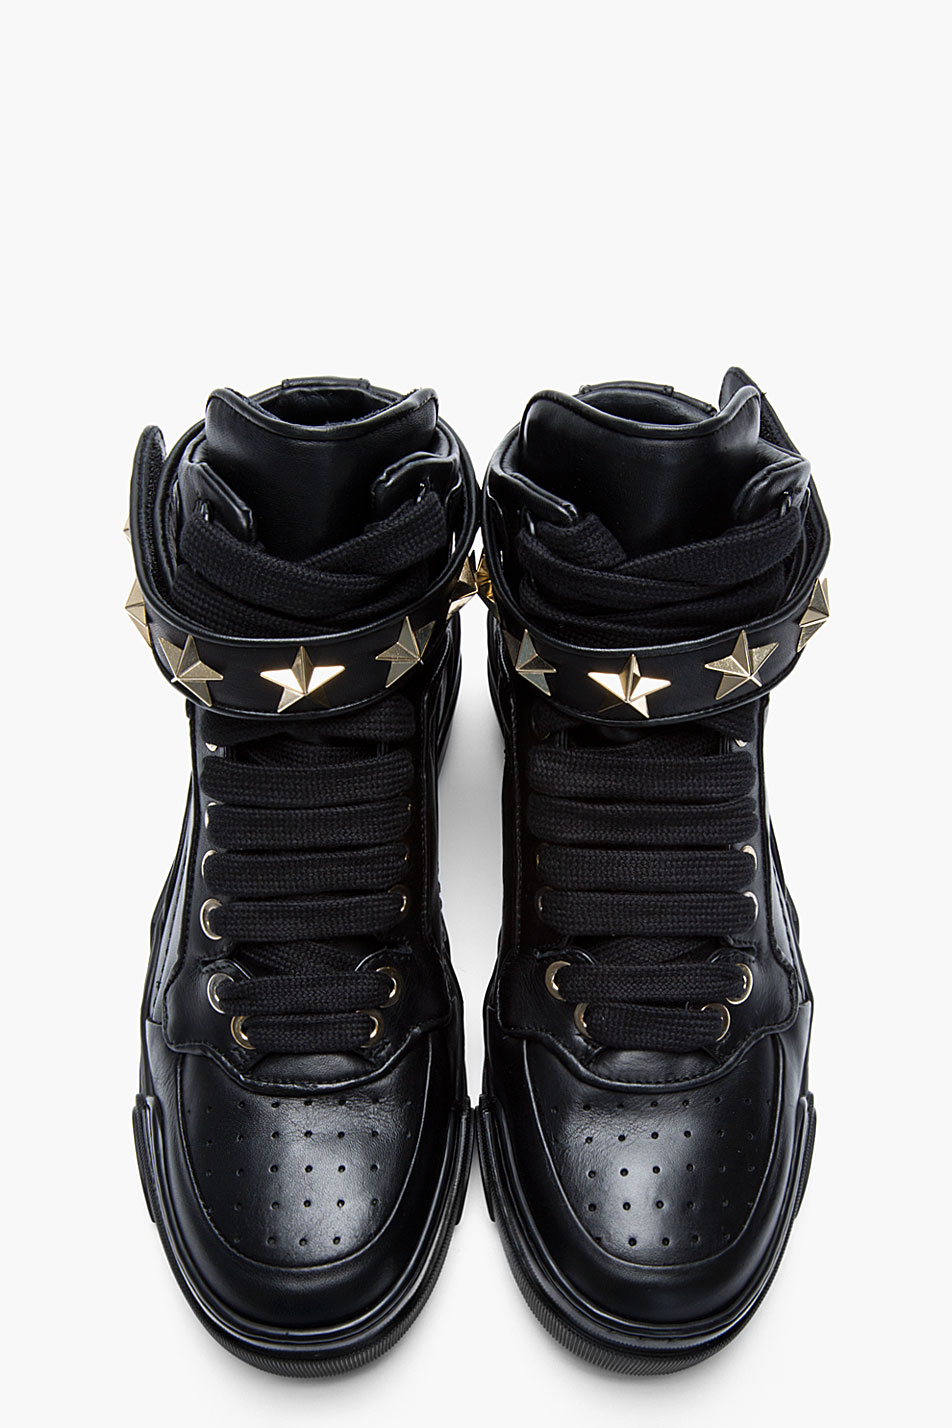 Givenchy Star-Embellished ball sneakers 2